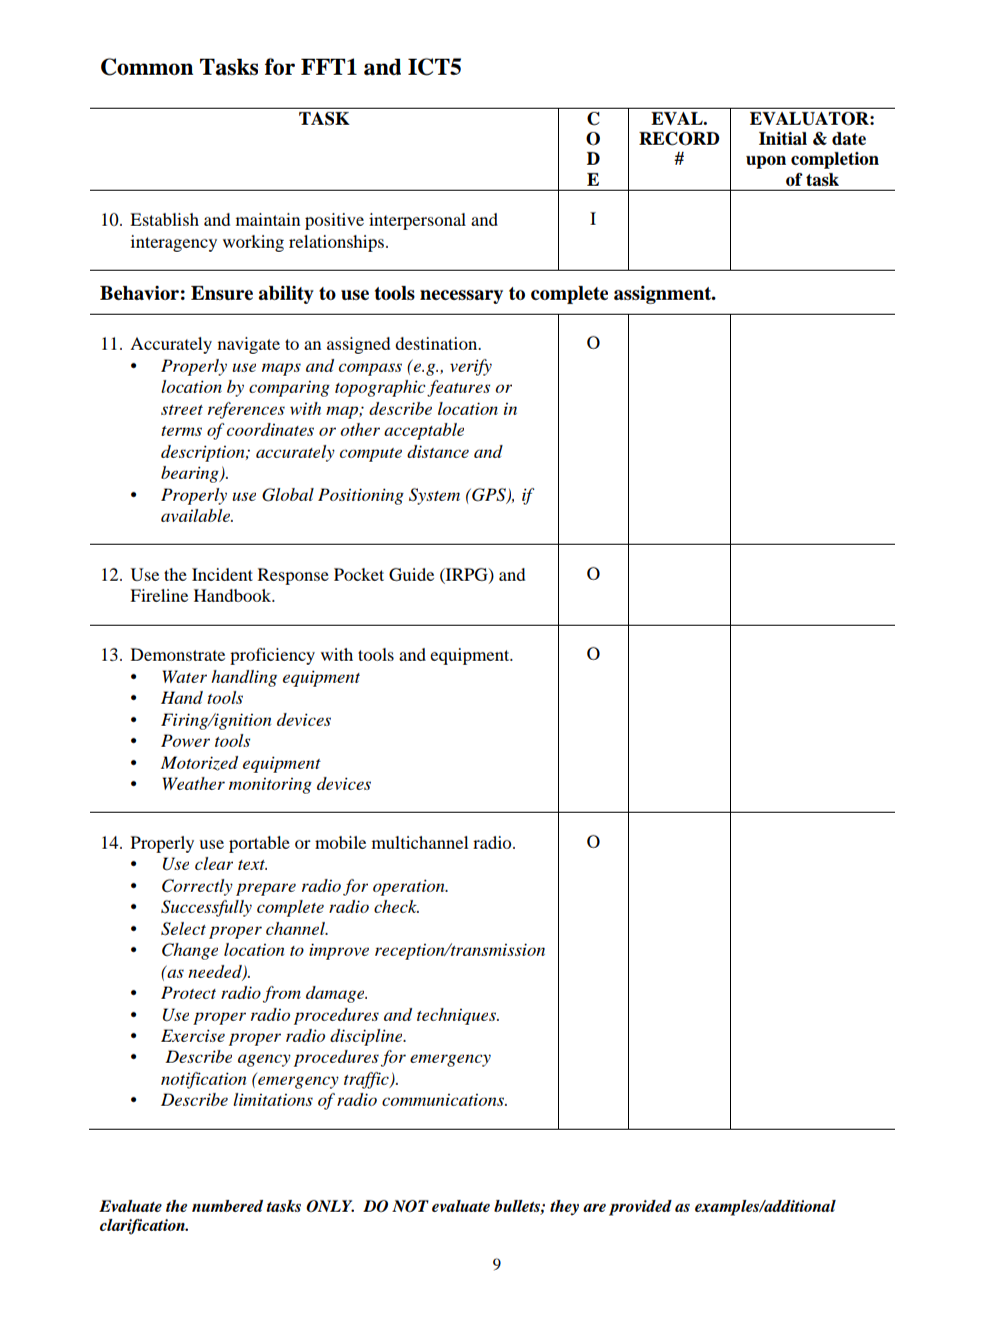 a page from the FFT1/ICT5 position task book, NWCG.gov